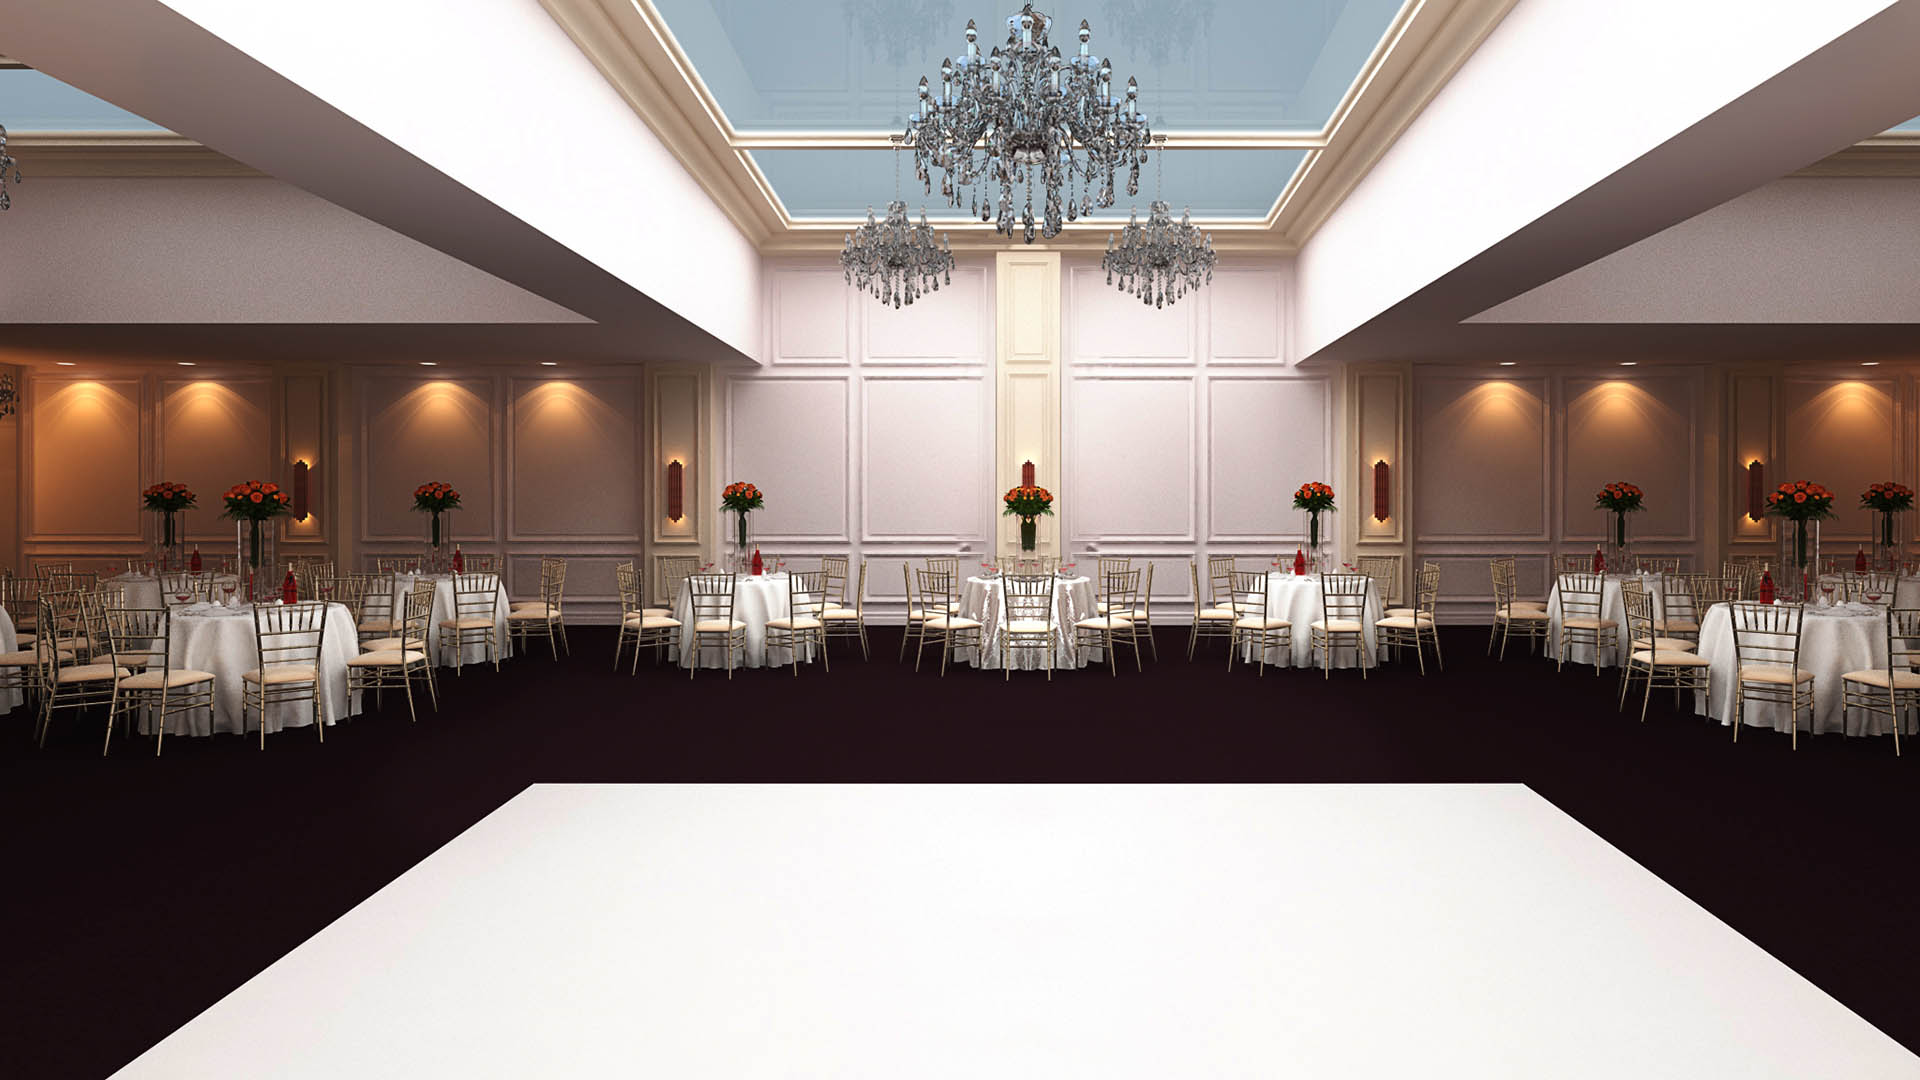 silver-pearl-wedding-venue-render-2.jpg